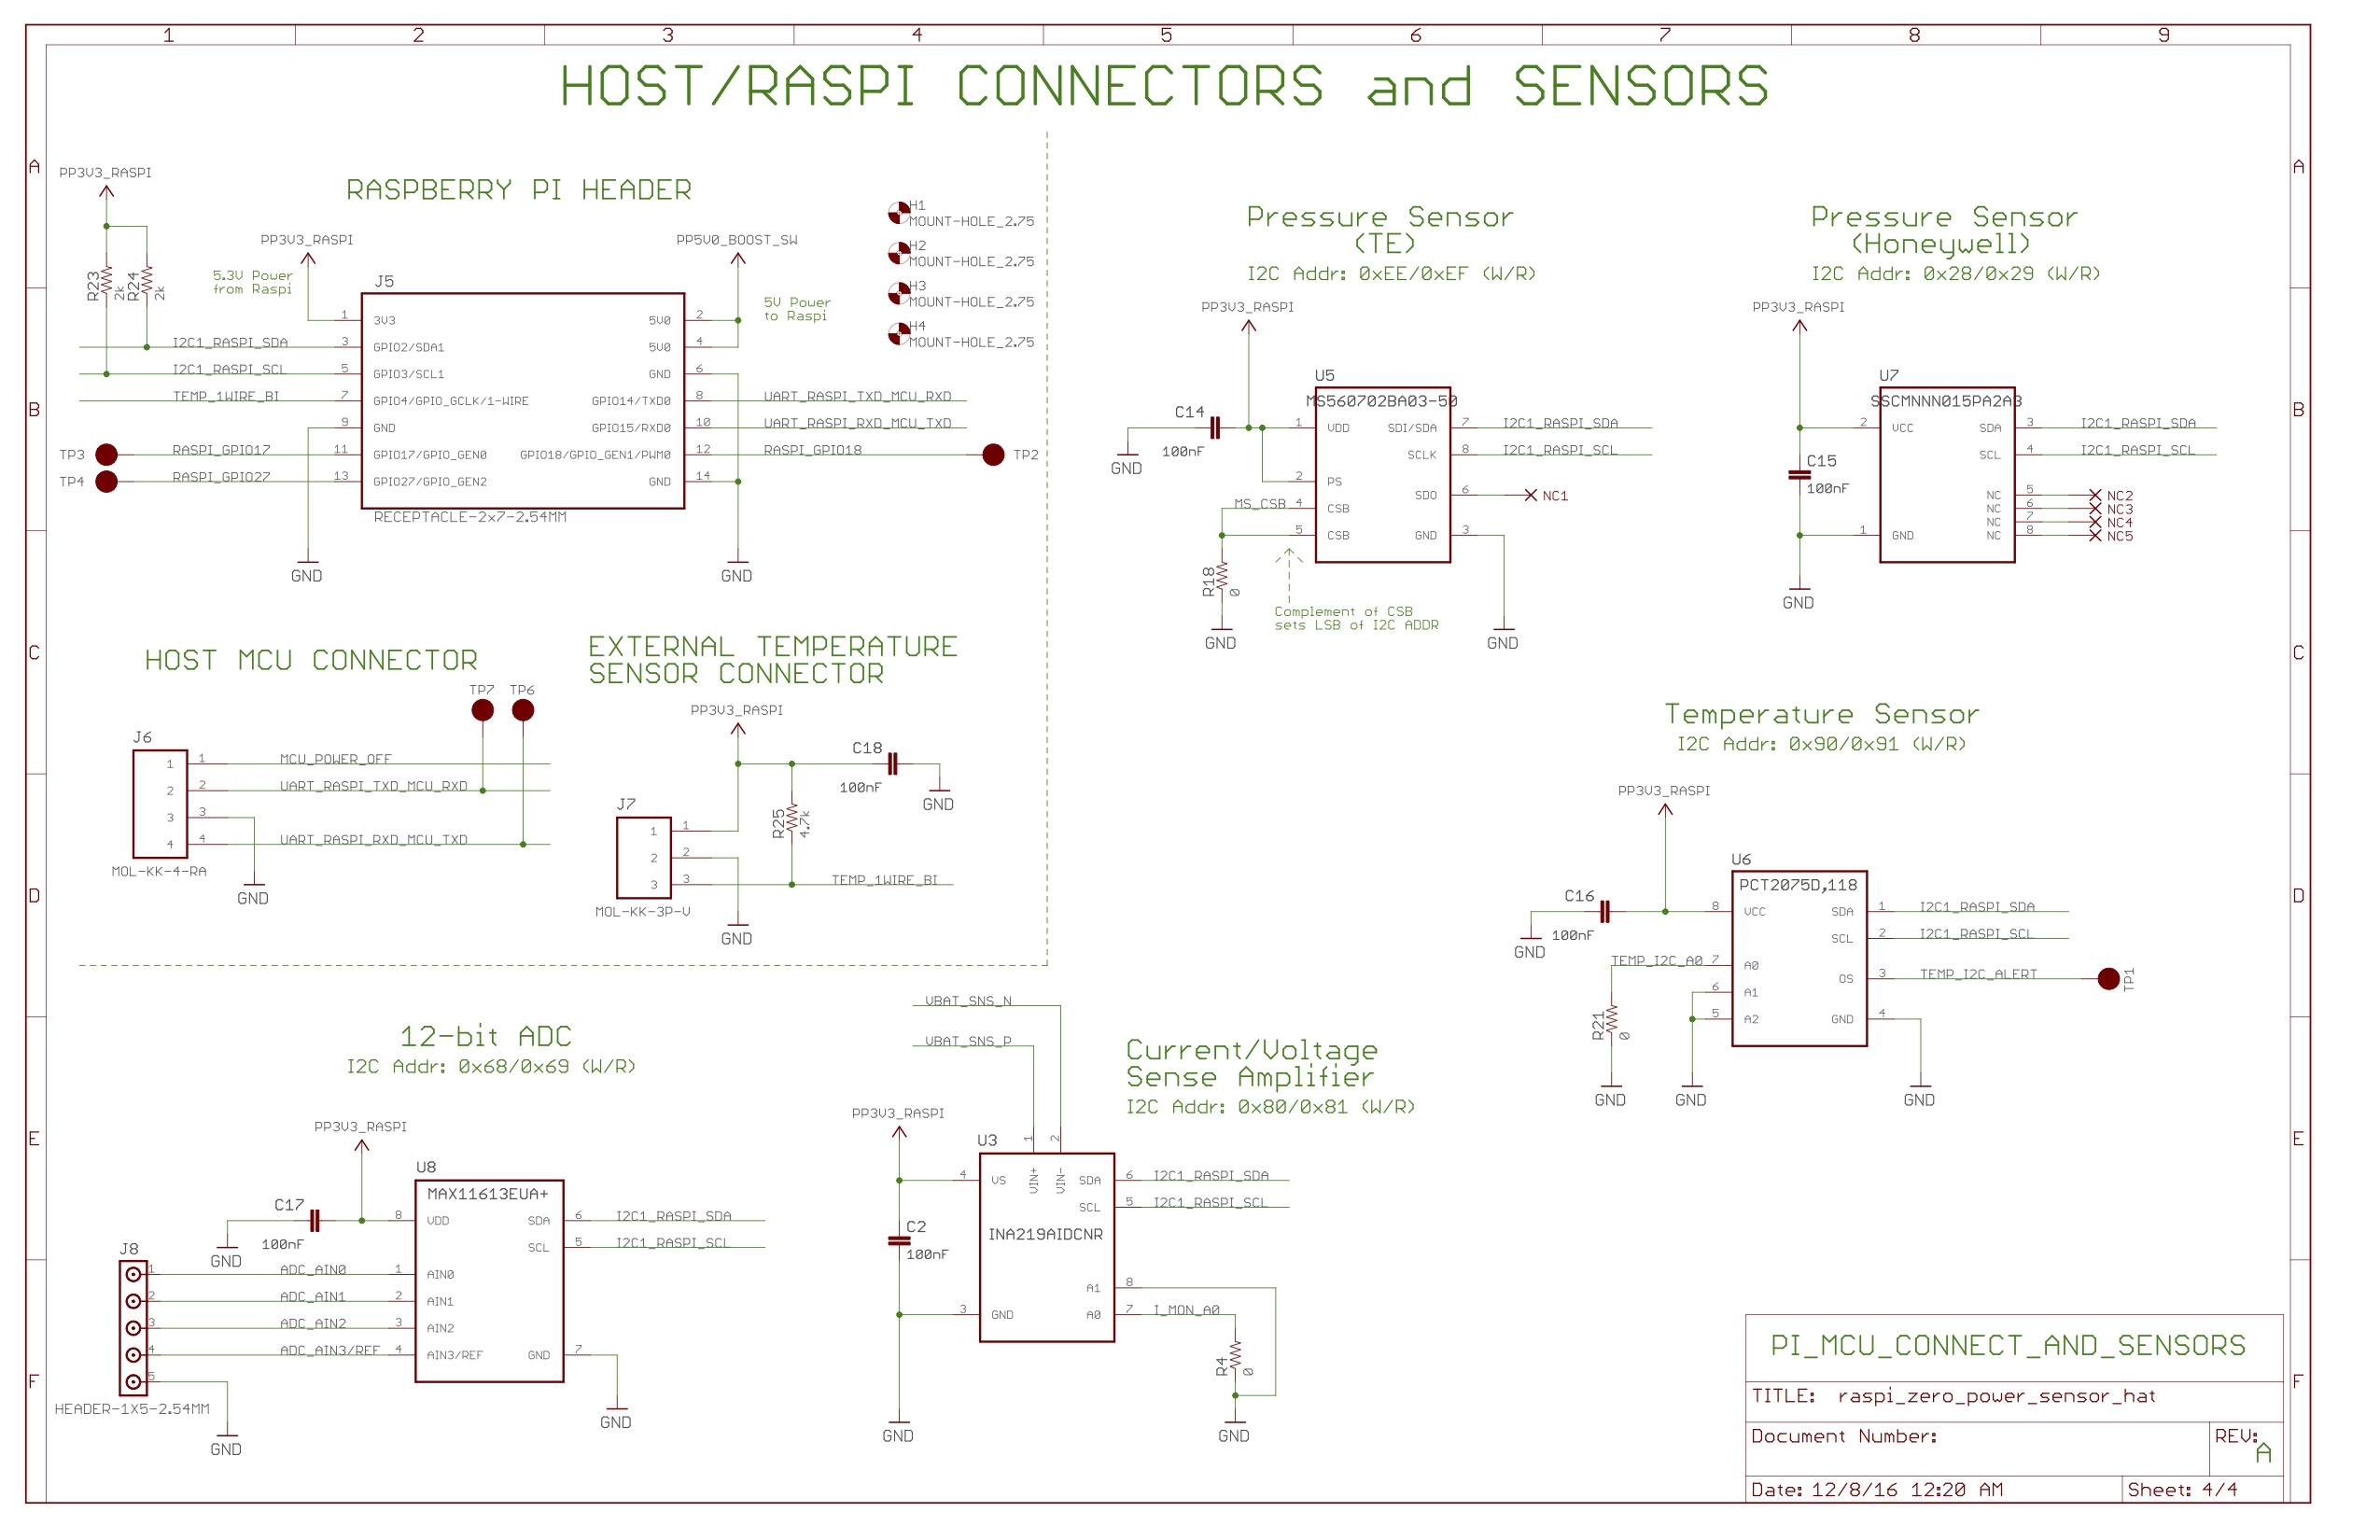 EDGE Raspberry Pi Schematic on raspberry pi foundation, lcd schematic, acorn computers, xbox 360 schematic, acorn archimedes, bluetooth schematic, beagle board, orange pi schematic, ipad schematic, computer schematic, gpio pinout schematic, bbc micro, banana pi schematic, scr dimmer schematic, single-board computer, zx spectrum, rs232 isolator schematic, scr motor control schematic, atmega328 schematic, usb schematic,